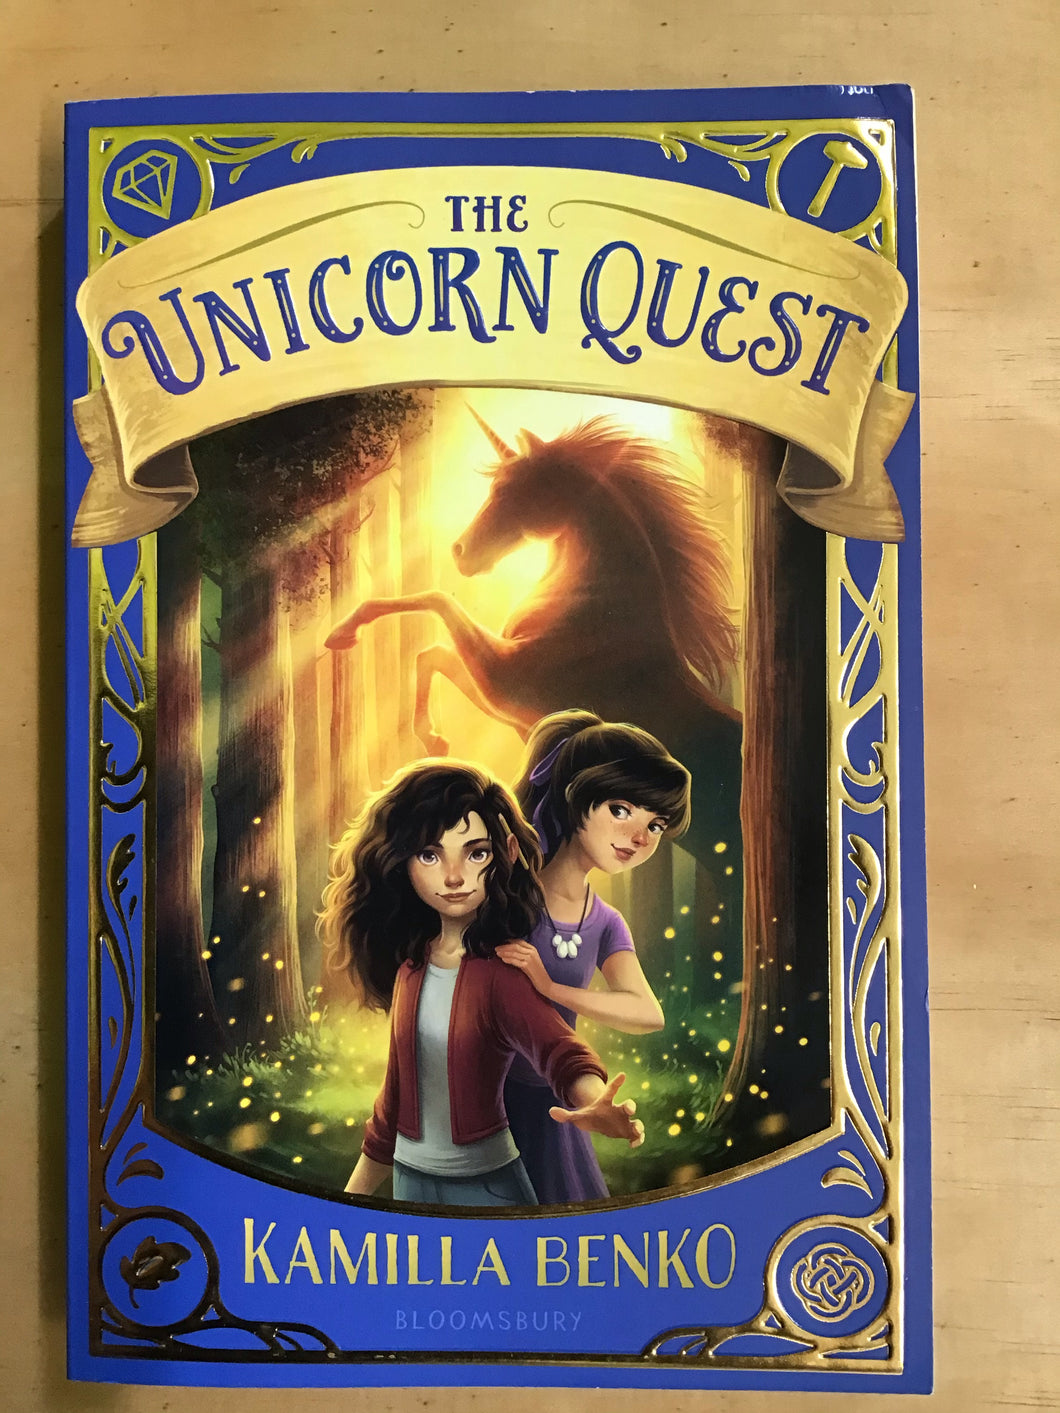 The Unicorn Quest